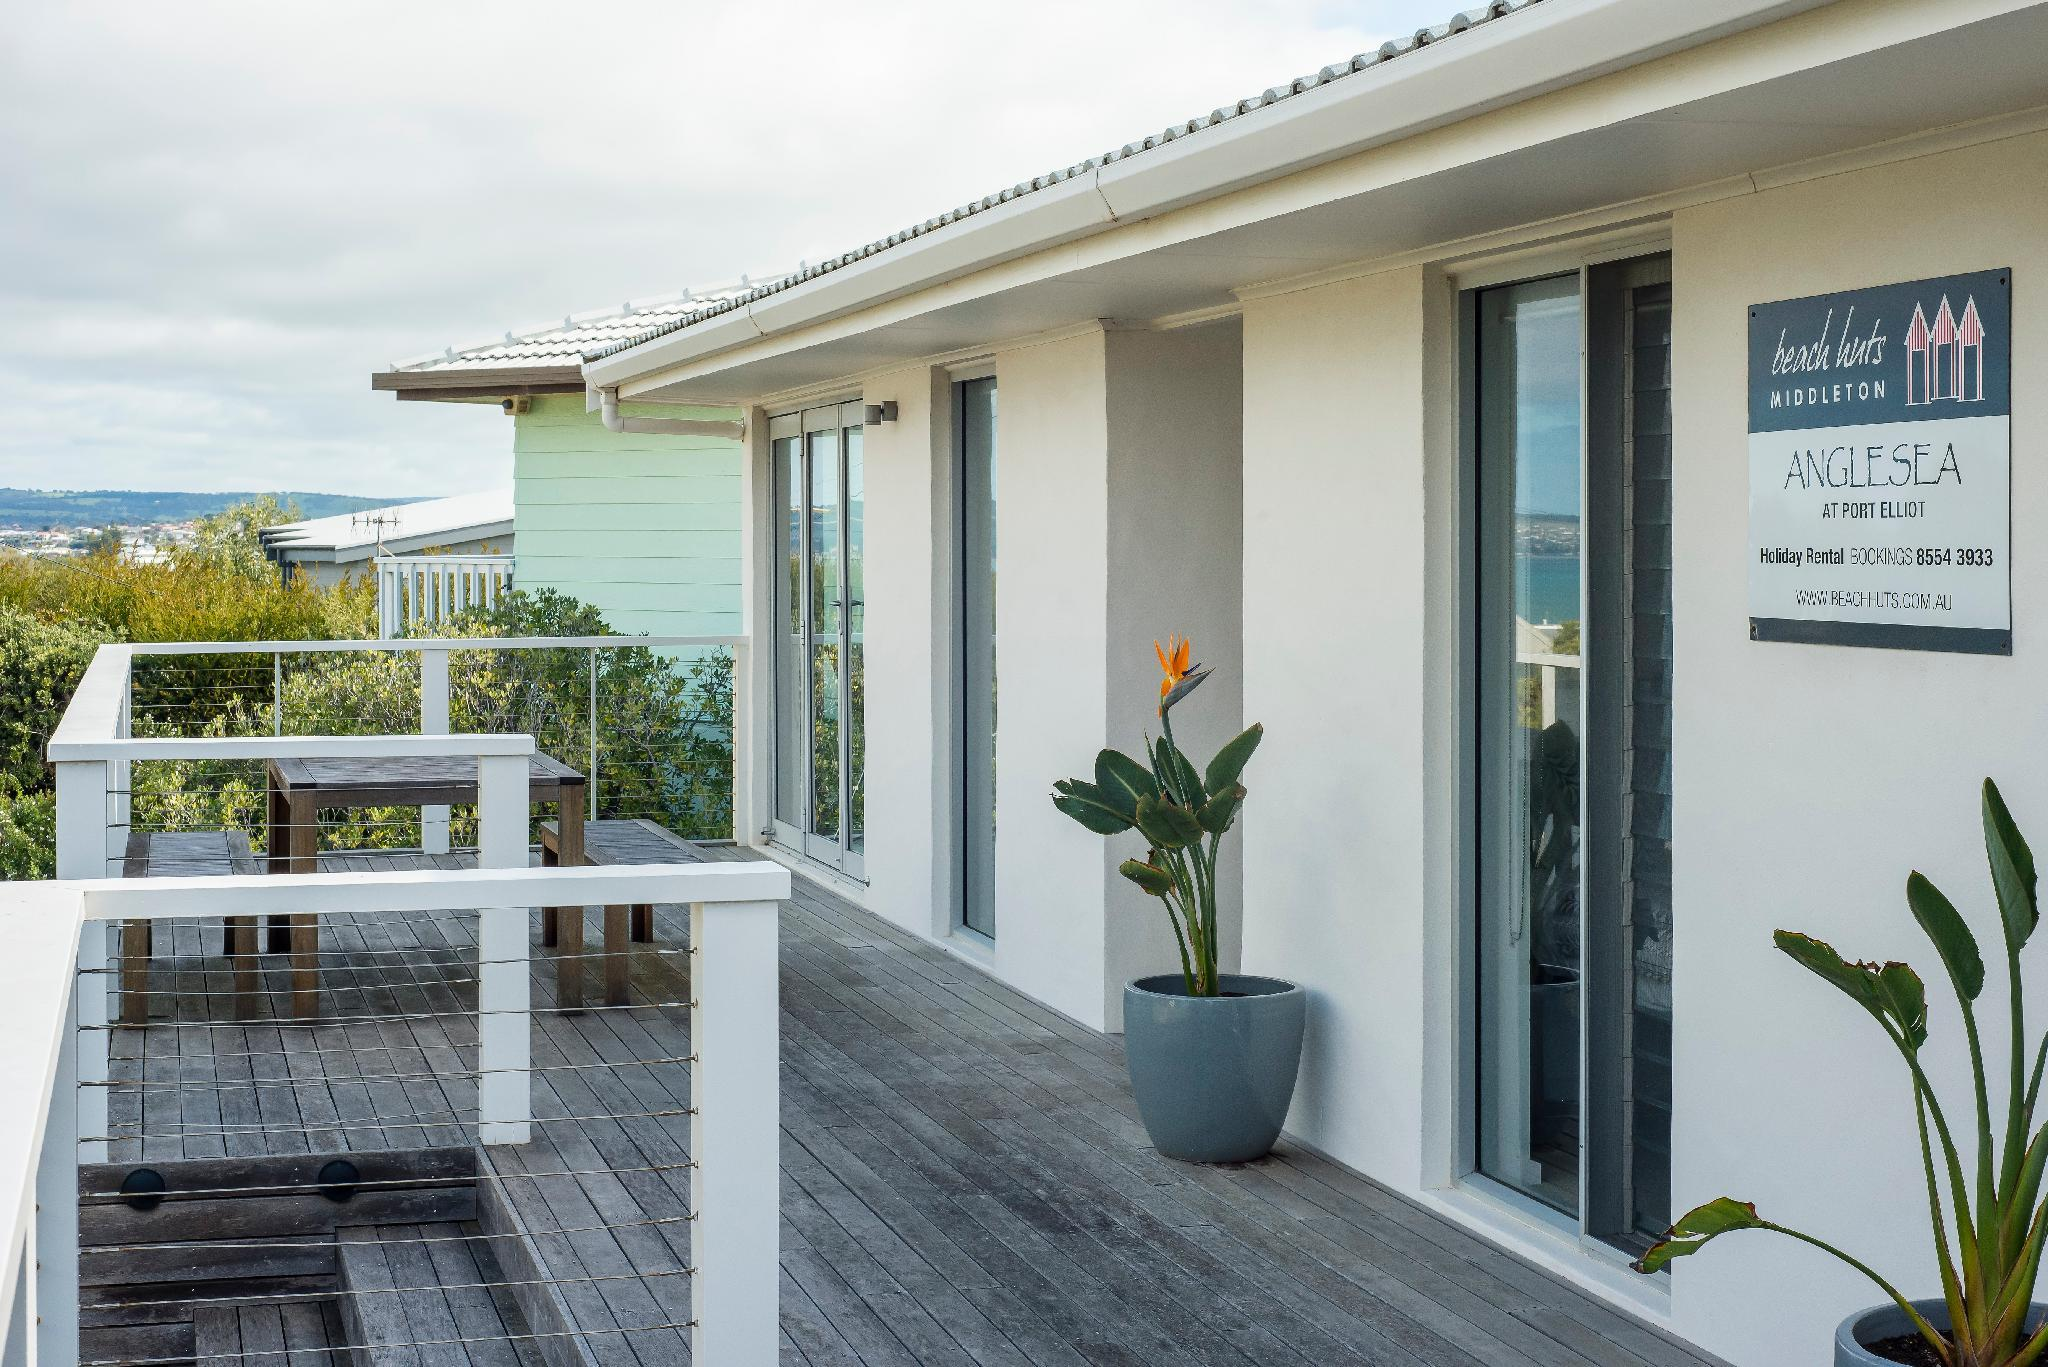 Anglesea At Port Elliot Holiday House